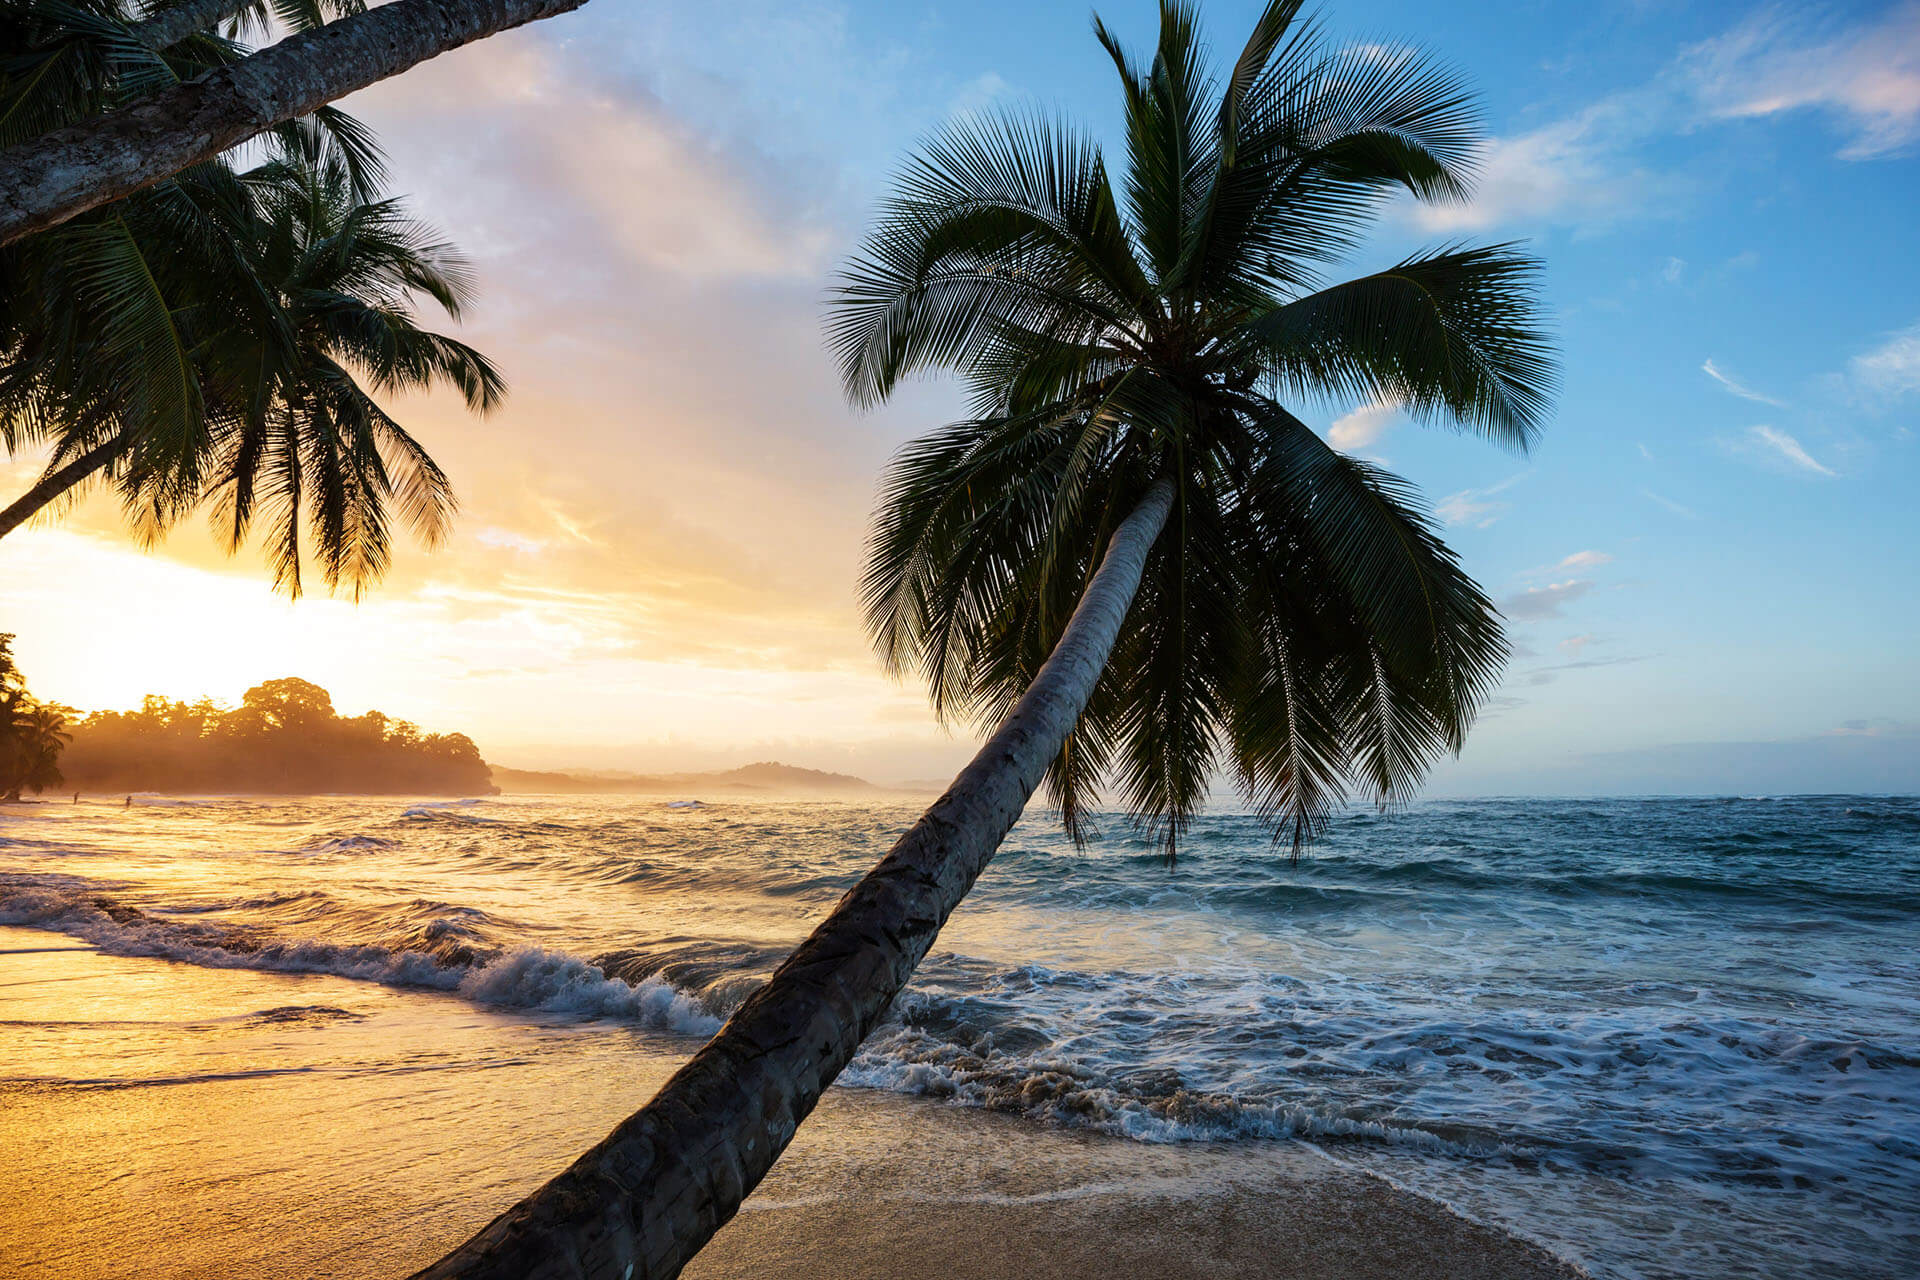 Costa Rica: New Remote Visa Program Approved by Government